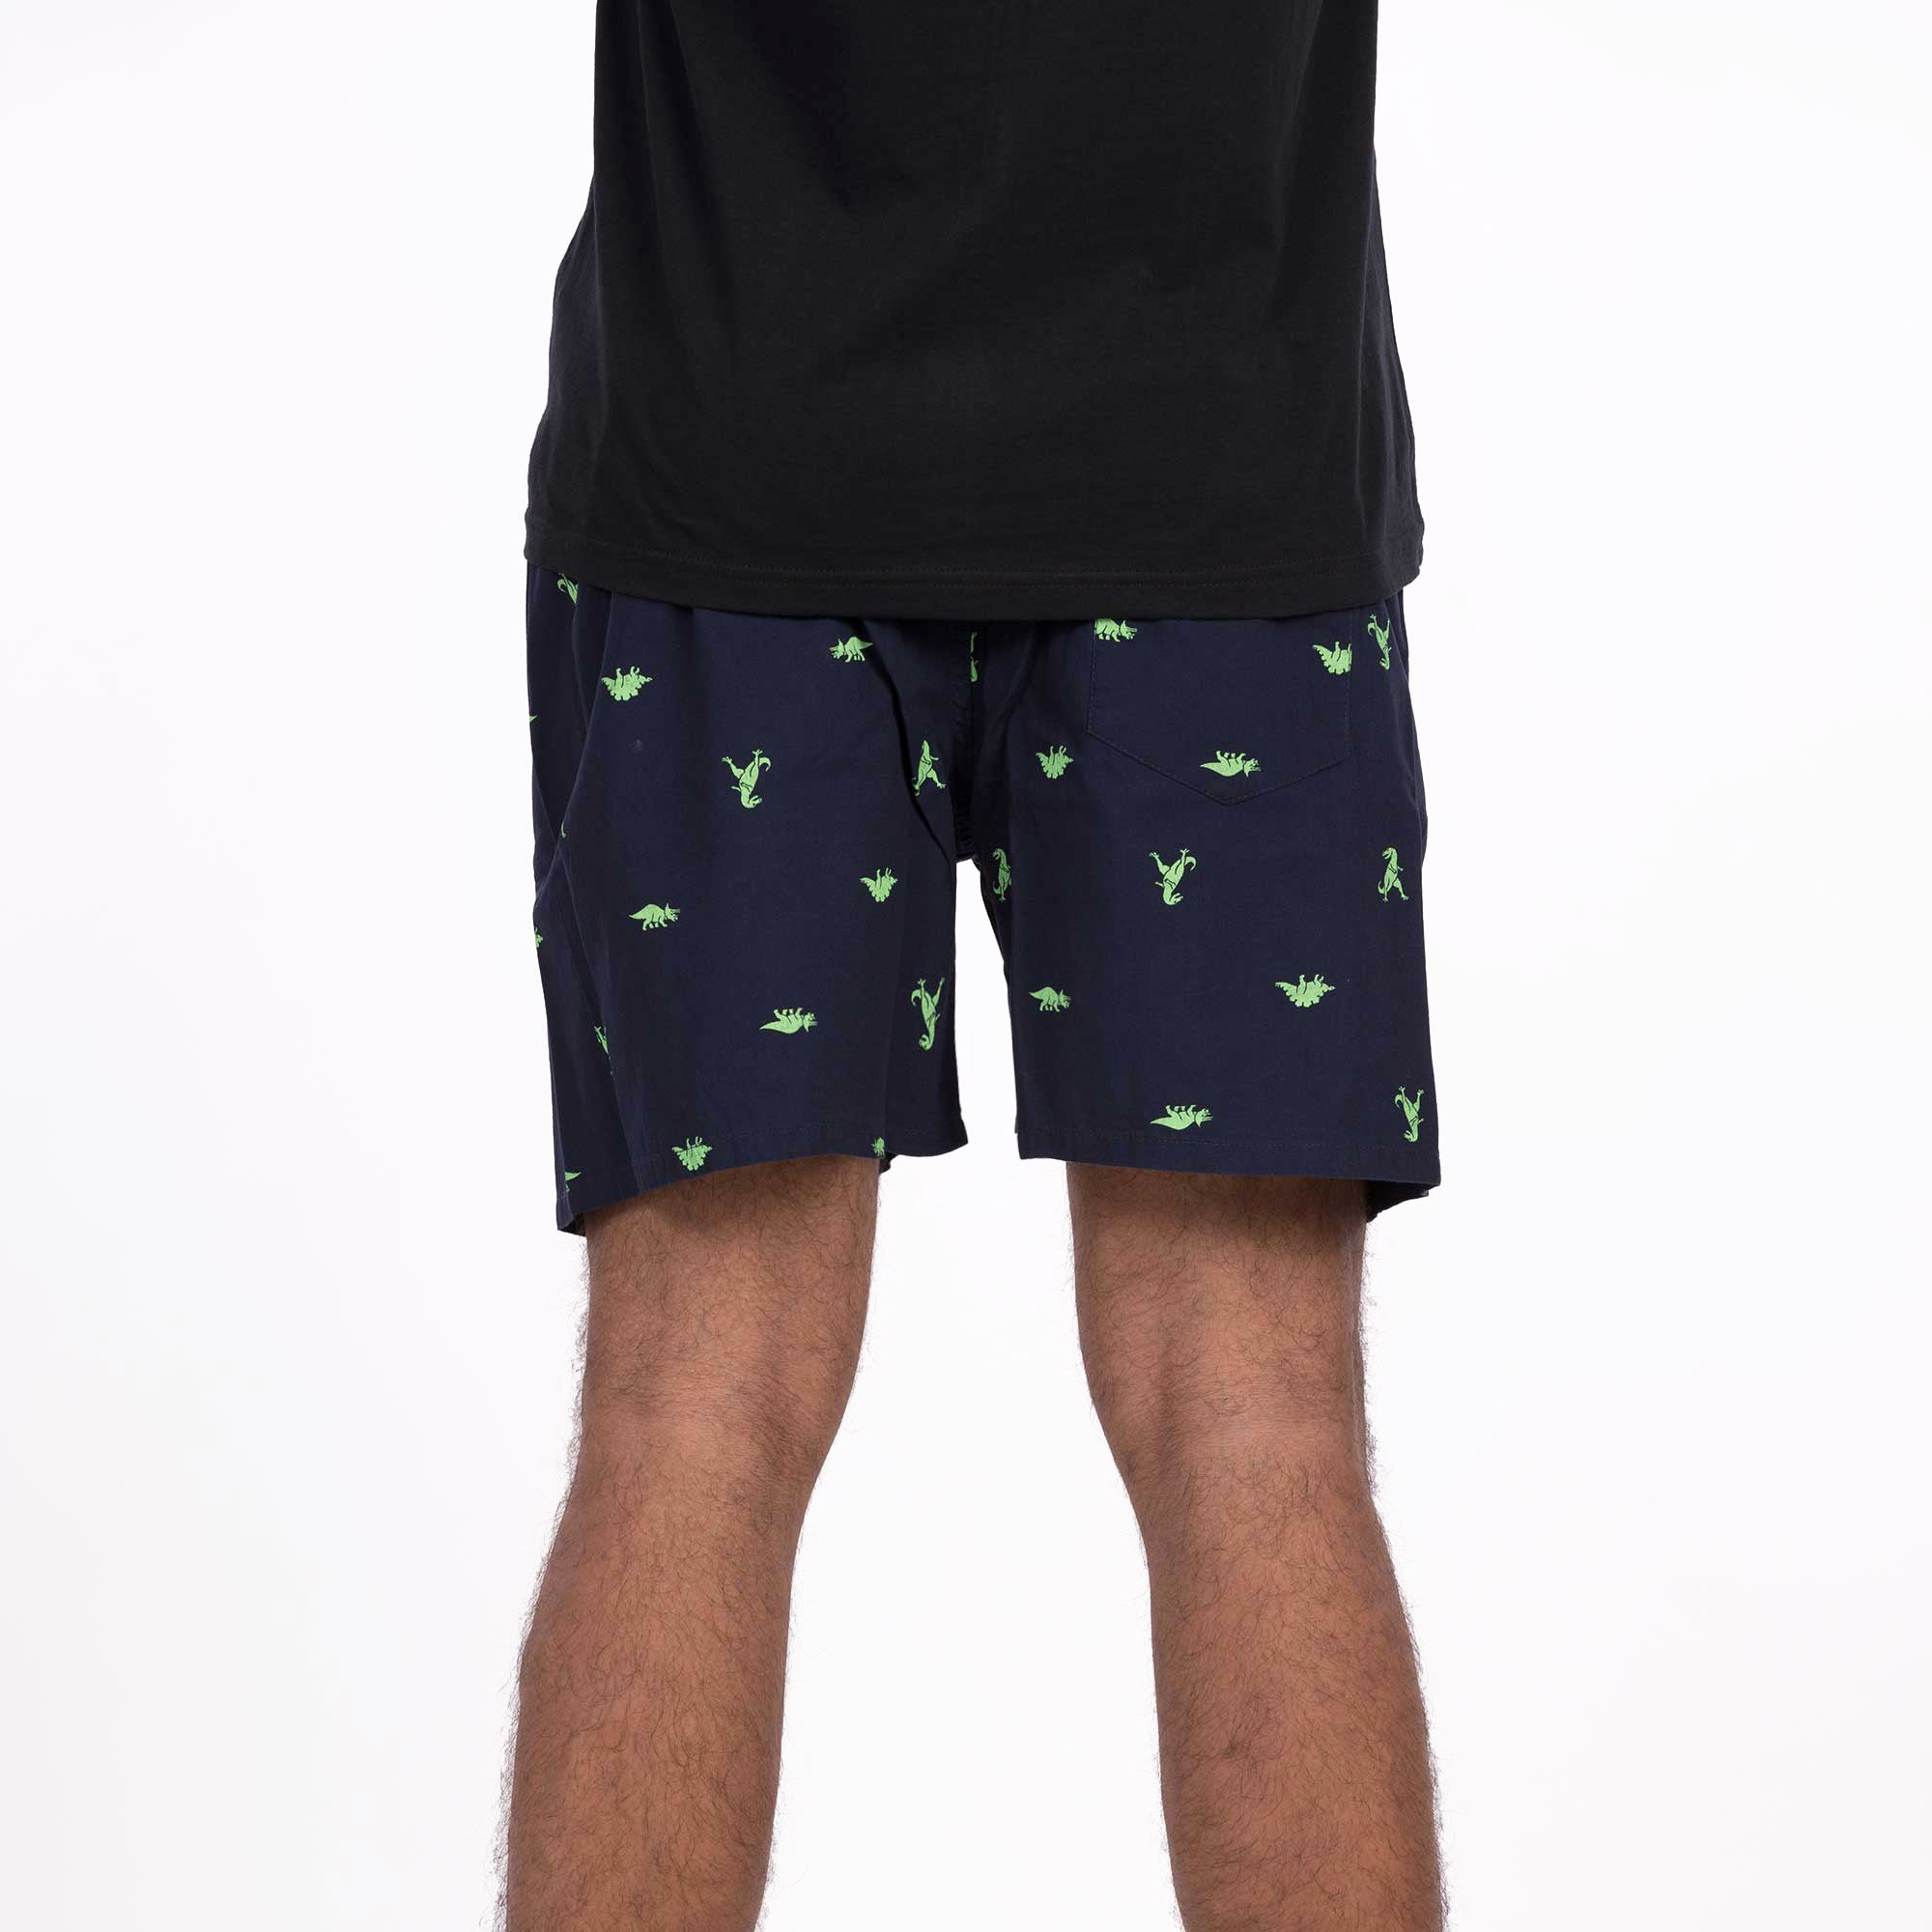 DMB01 Men's Boxer Shorts - Navy